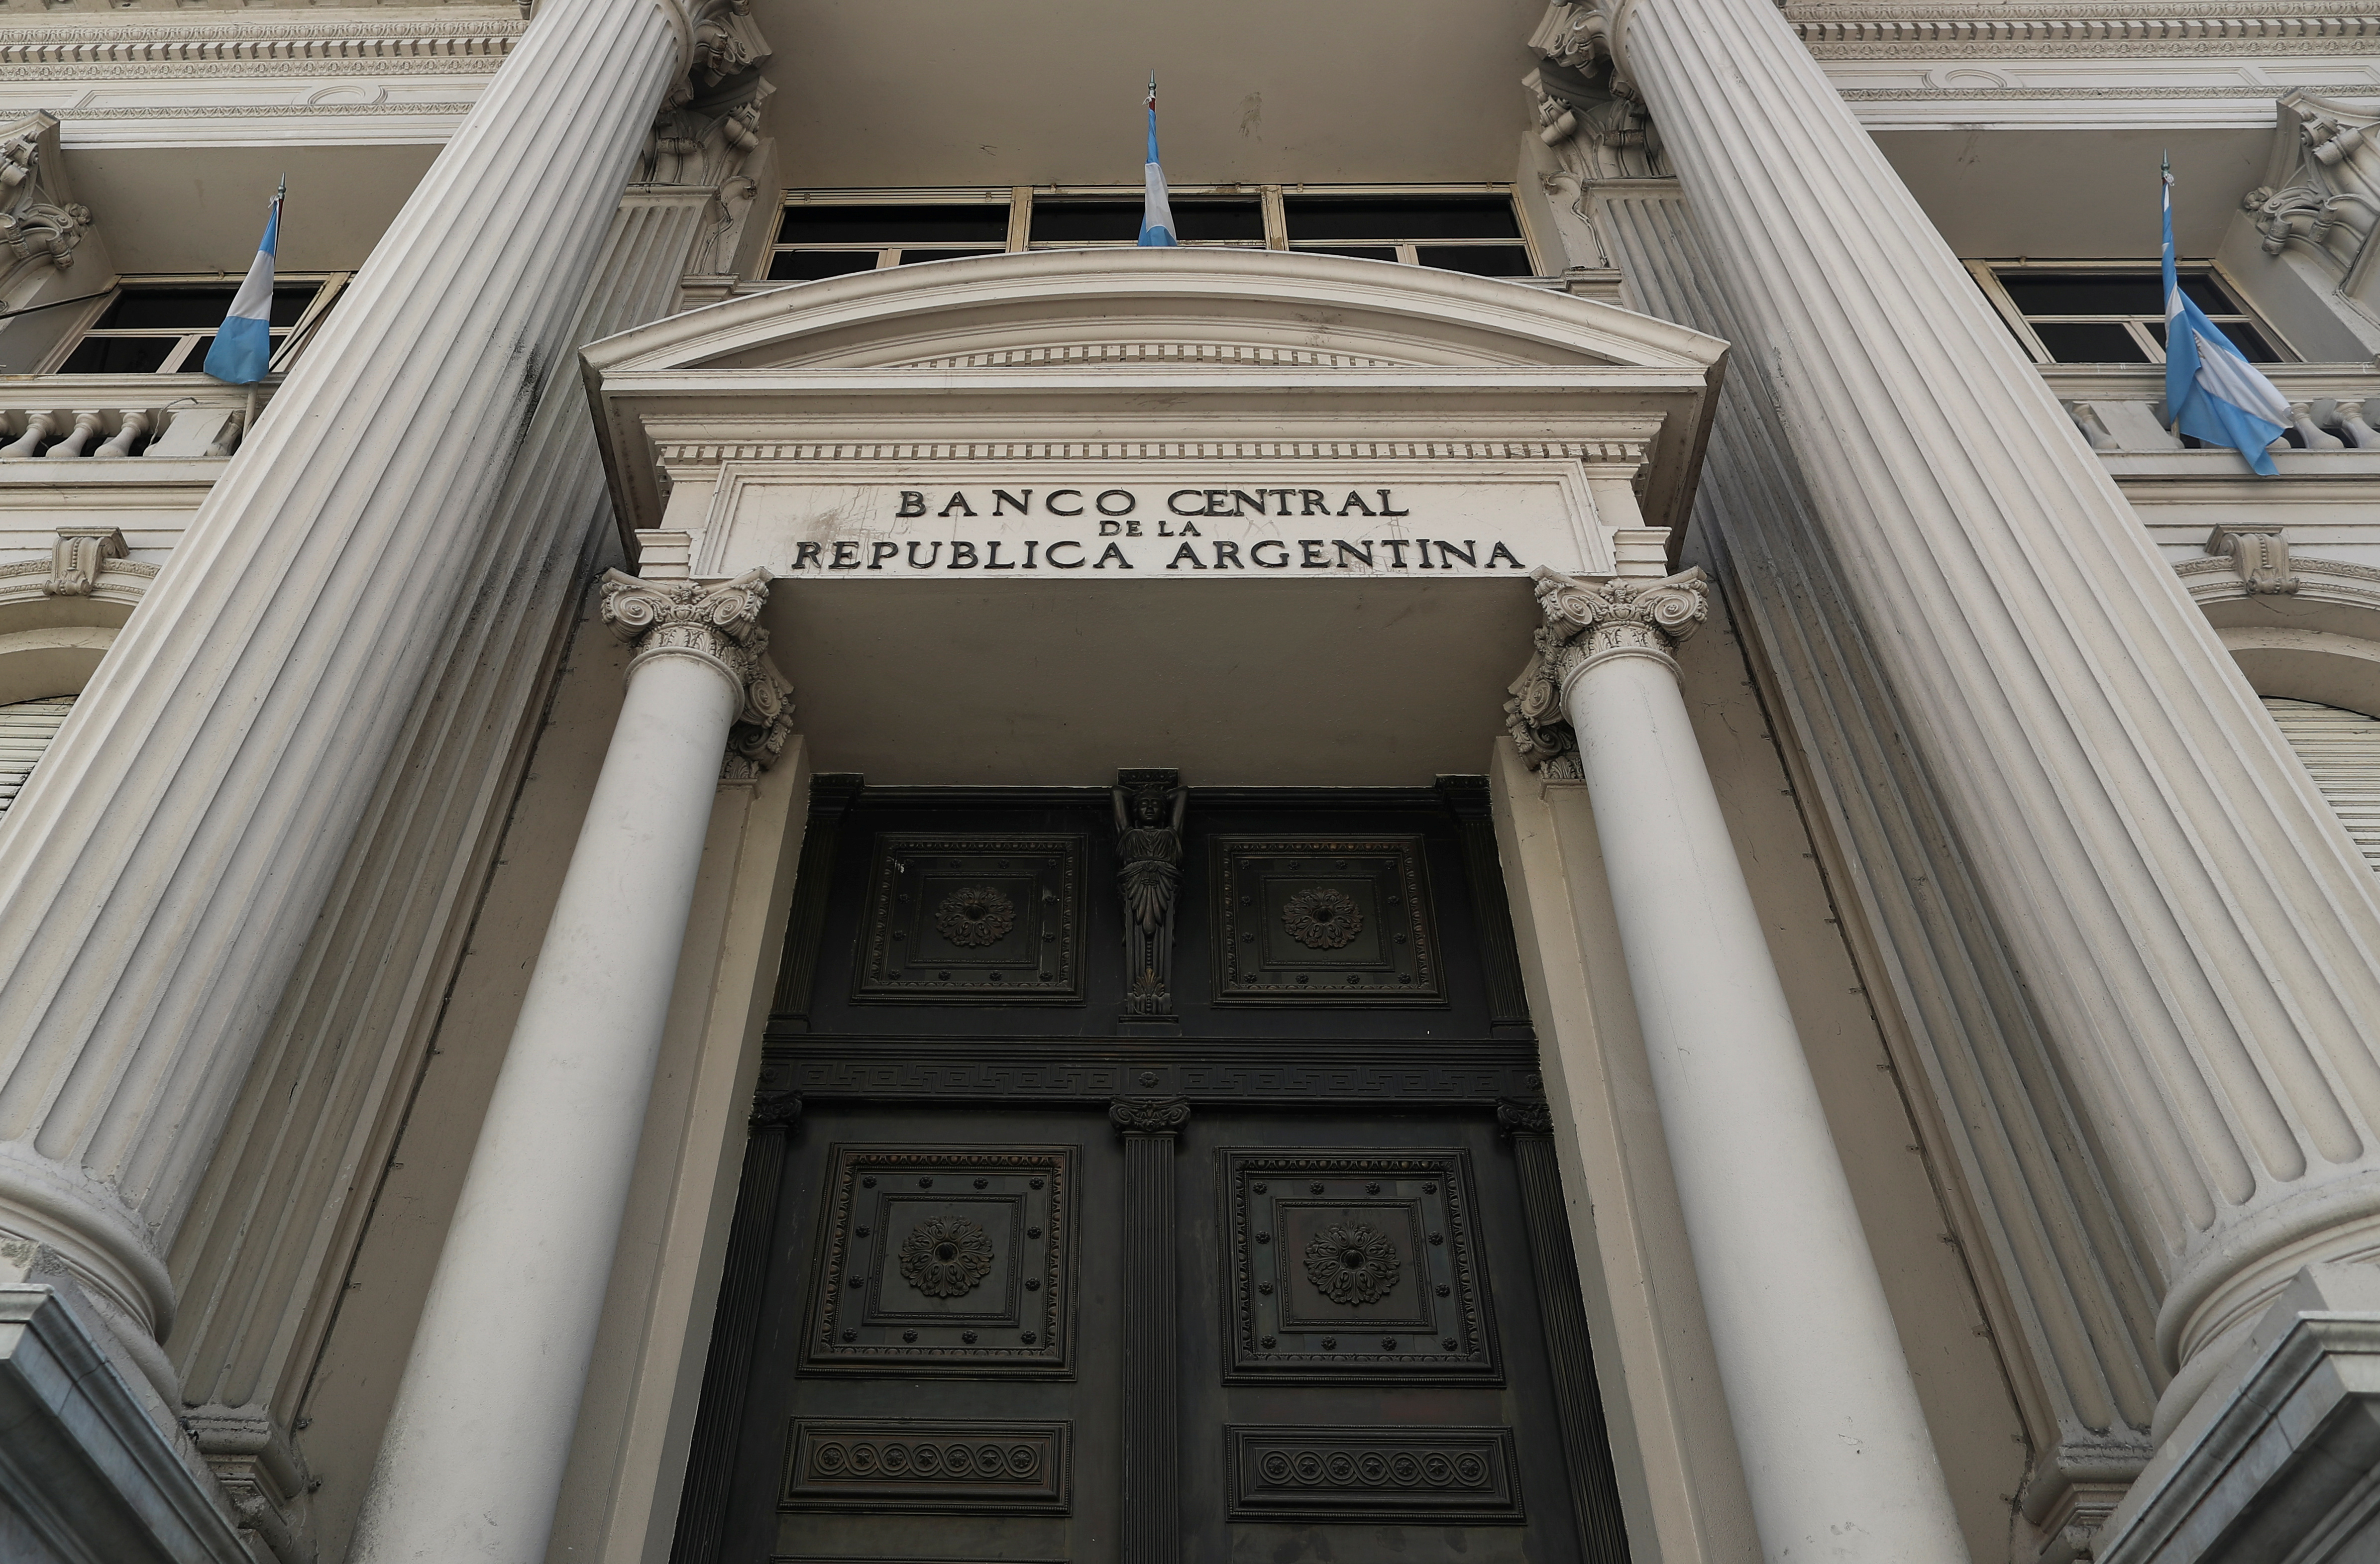 The facade of Argentina's Central Bank is pictured, in downtown Buenos Aires, Argentina September 16, 2020. REUTERS/Agustin Marcarian